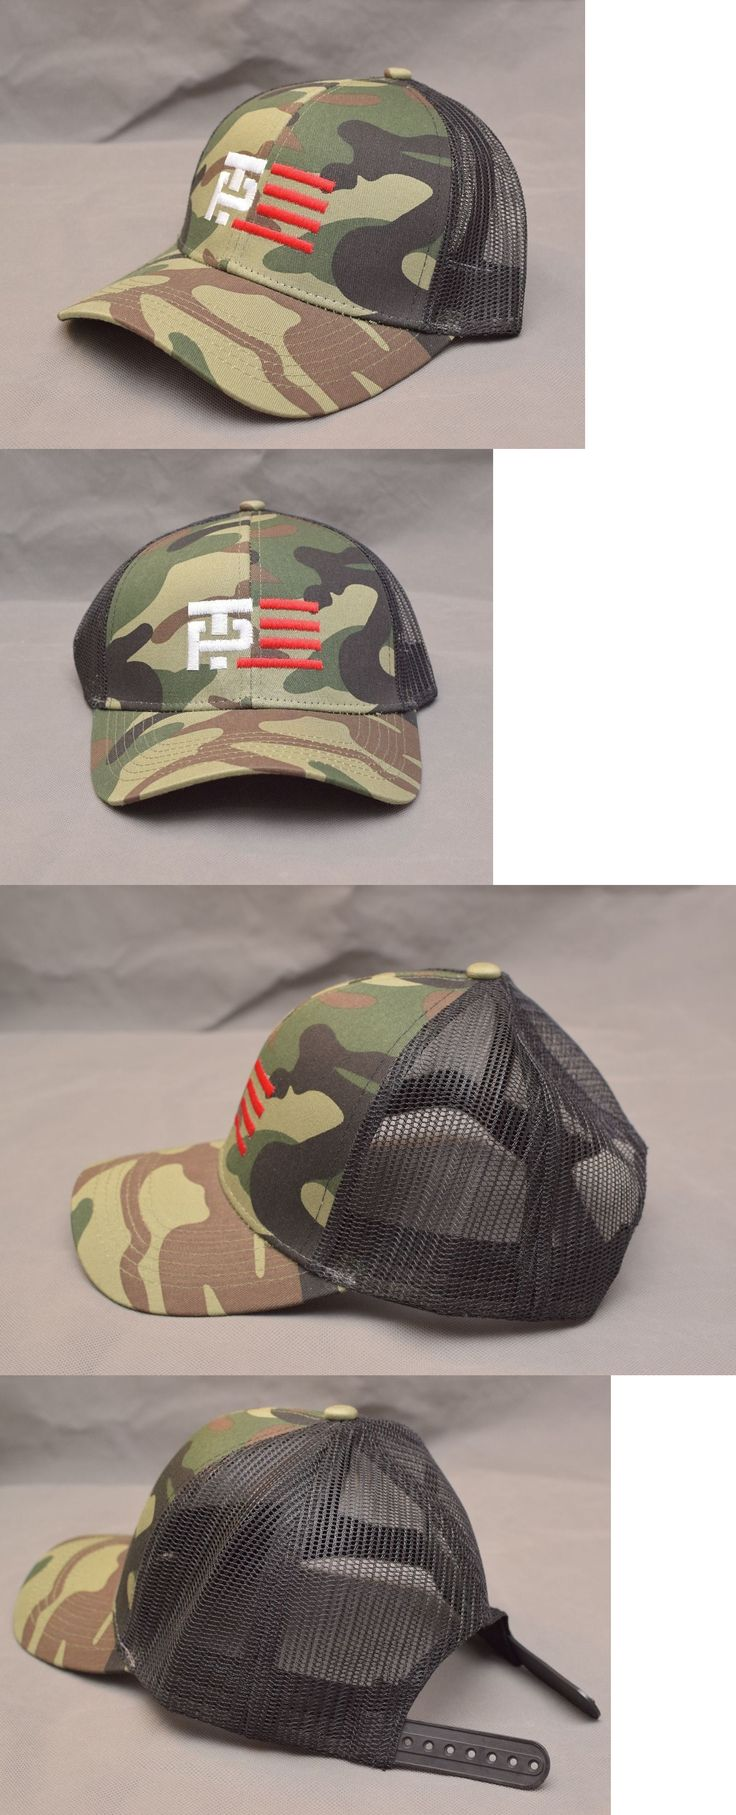 donald trump: Make America Great Again-Donald Trump Hat Republican 2016- Tp Flag Army Camo Cap -> BUY IT NOW ONLY: $14.77 on eBay!